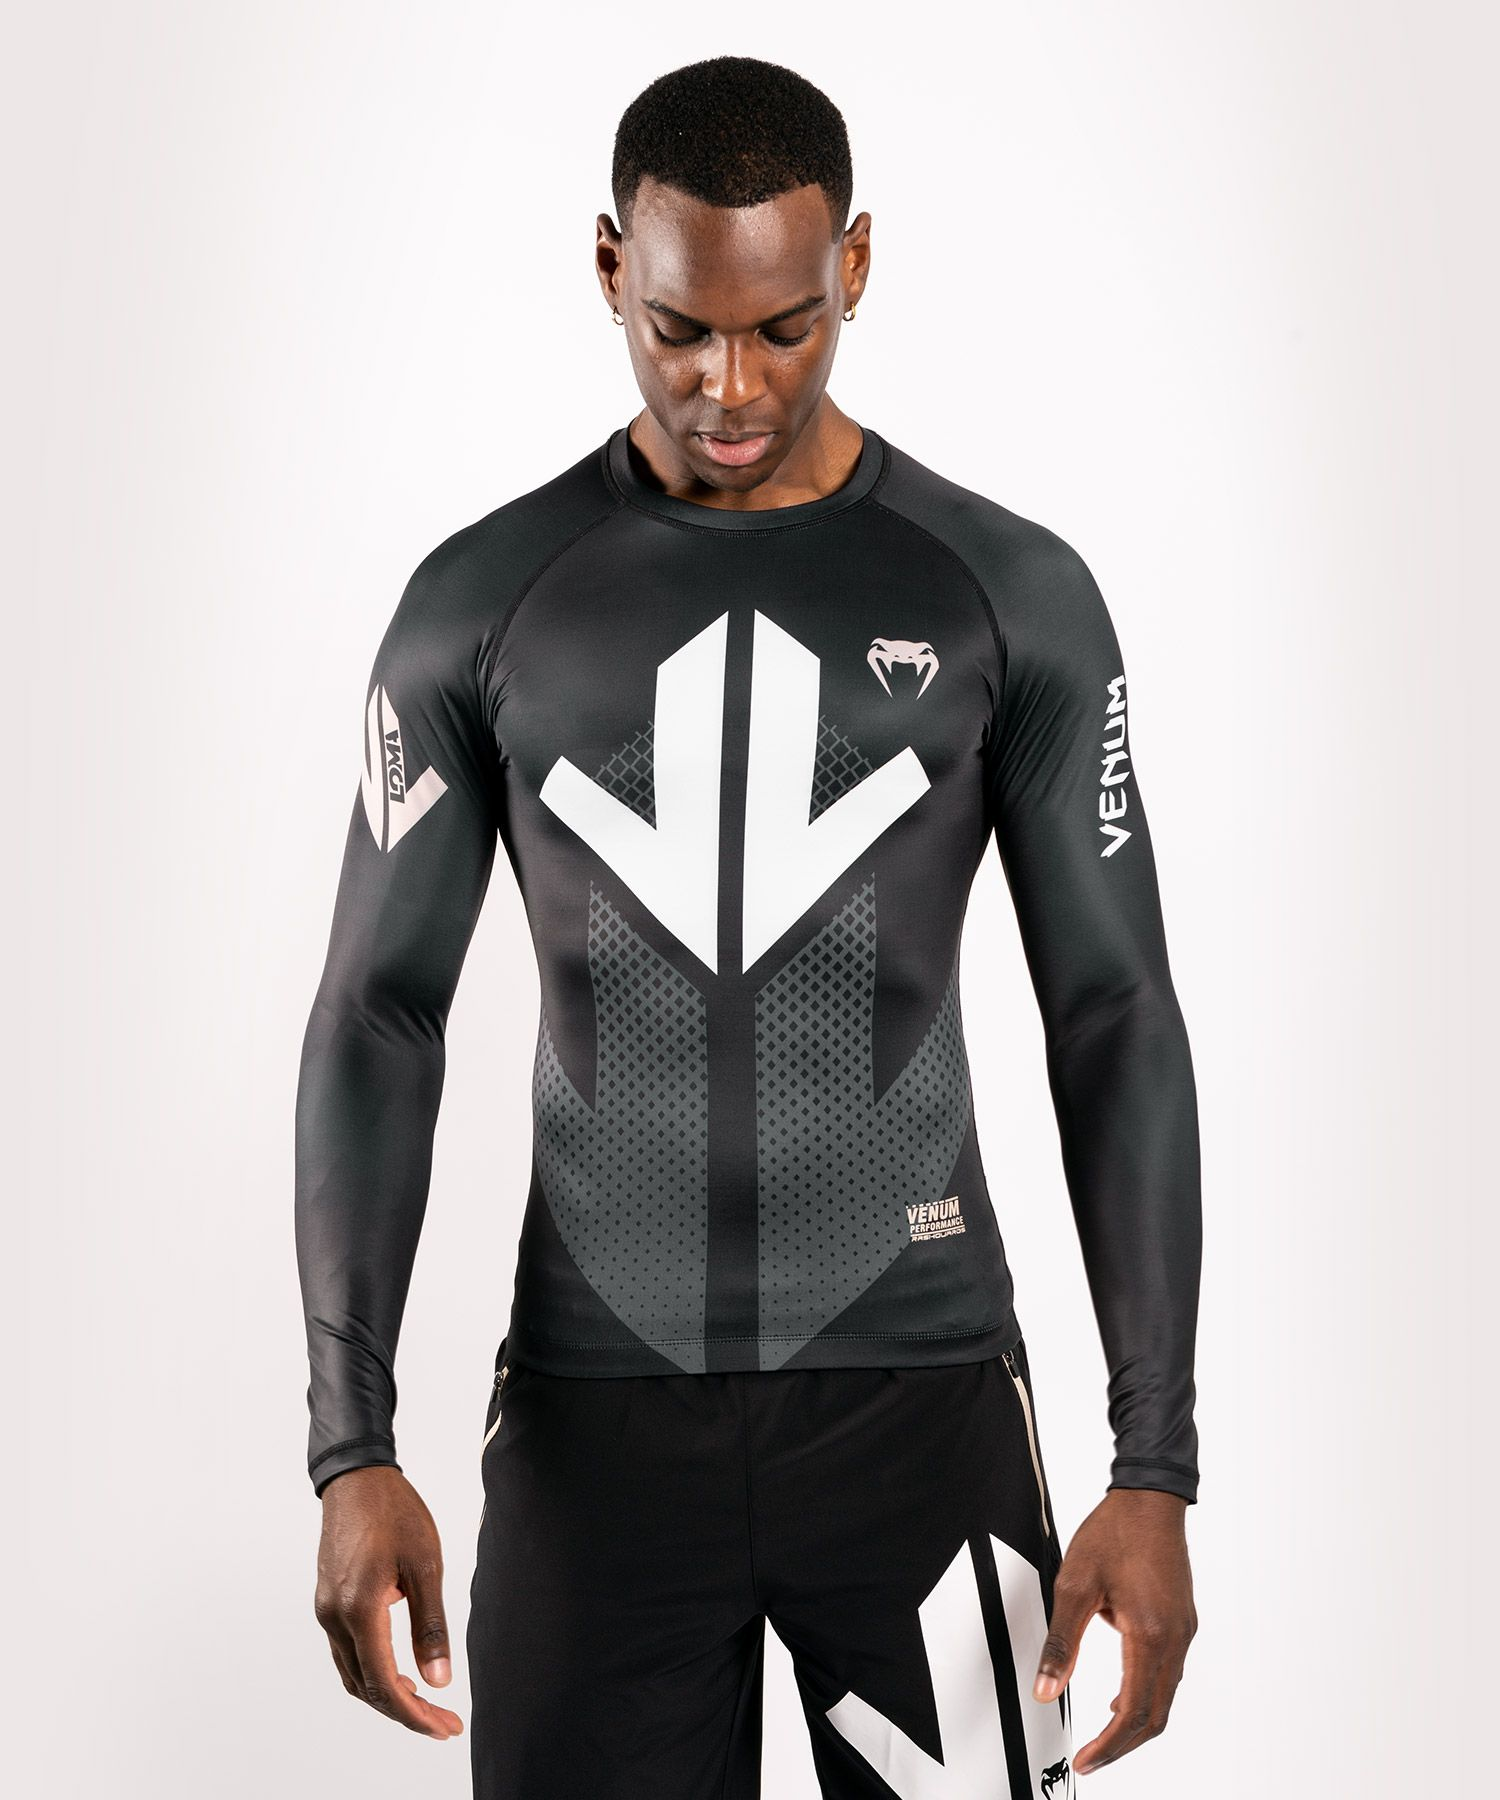 Venum Arrow  Loma Signature Collection Rashguard met lange mouwen - Zwart/wit